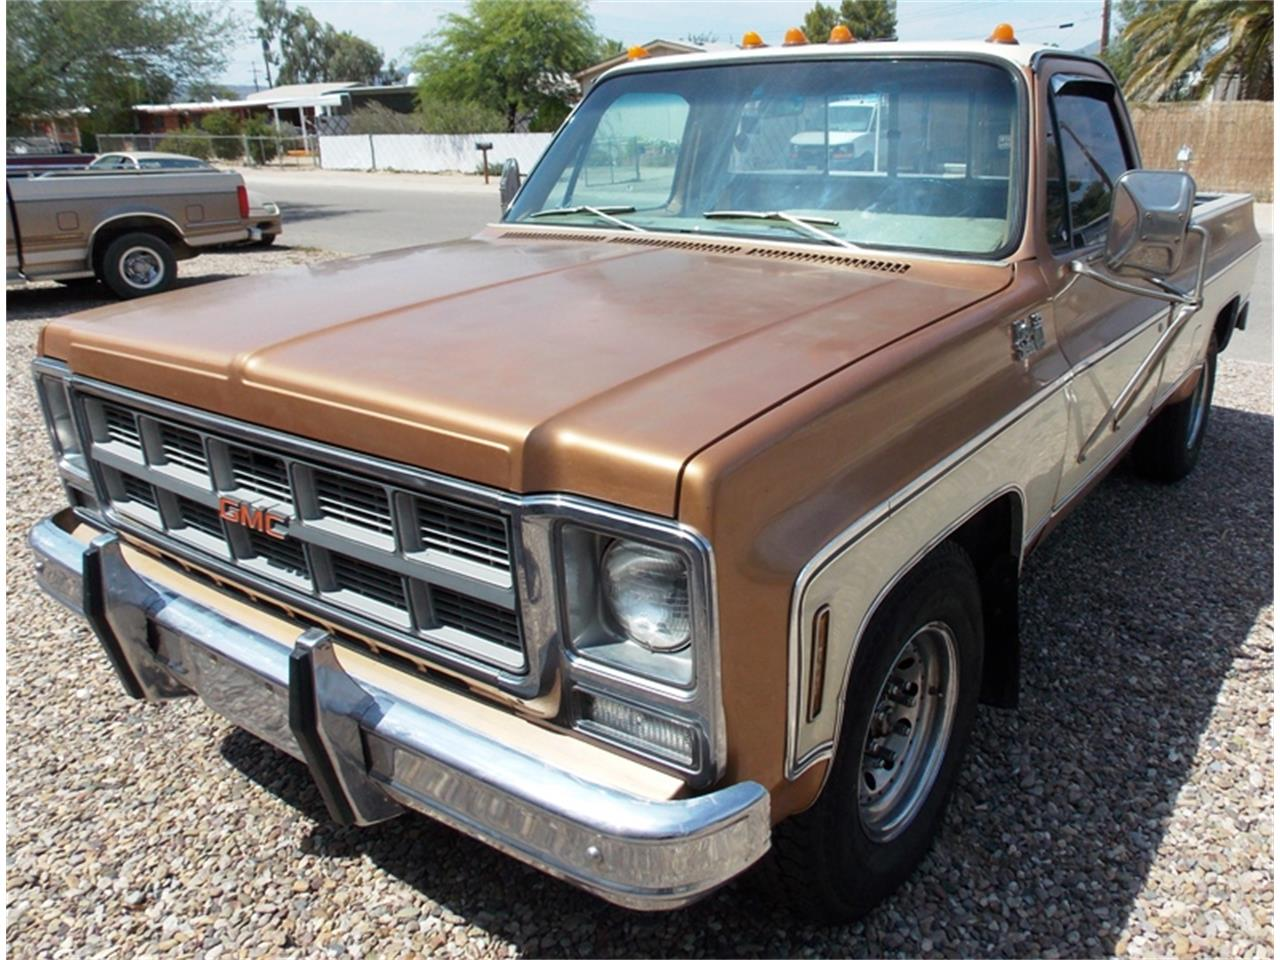 Large Picture of 1979 GMC 3500 located in Tucson Arizona - $9,900.00 - OE6G